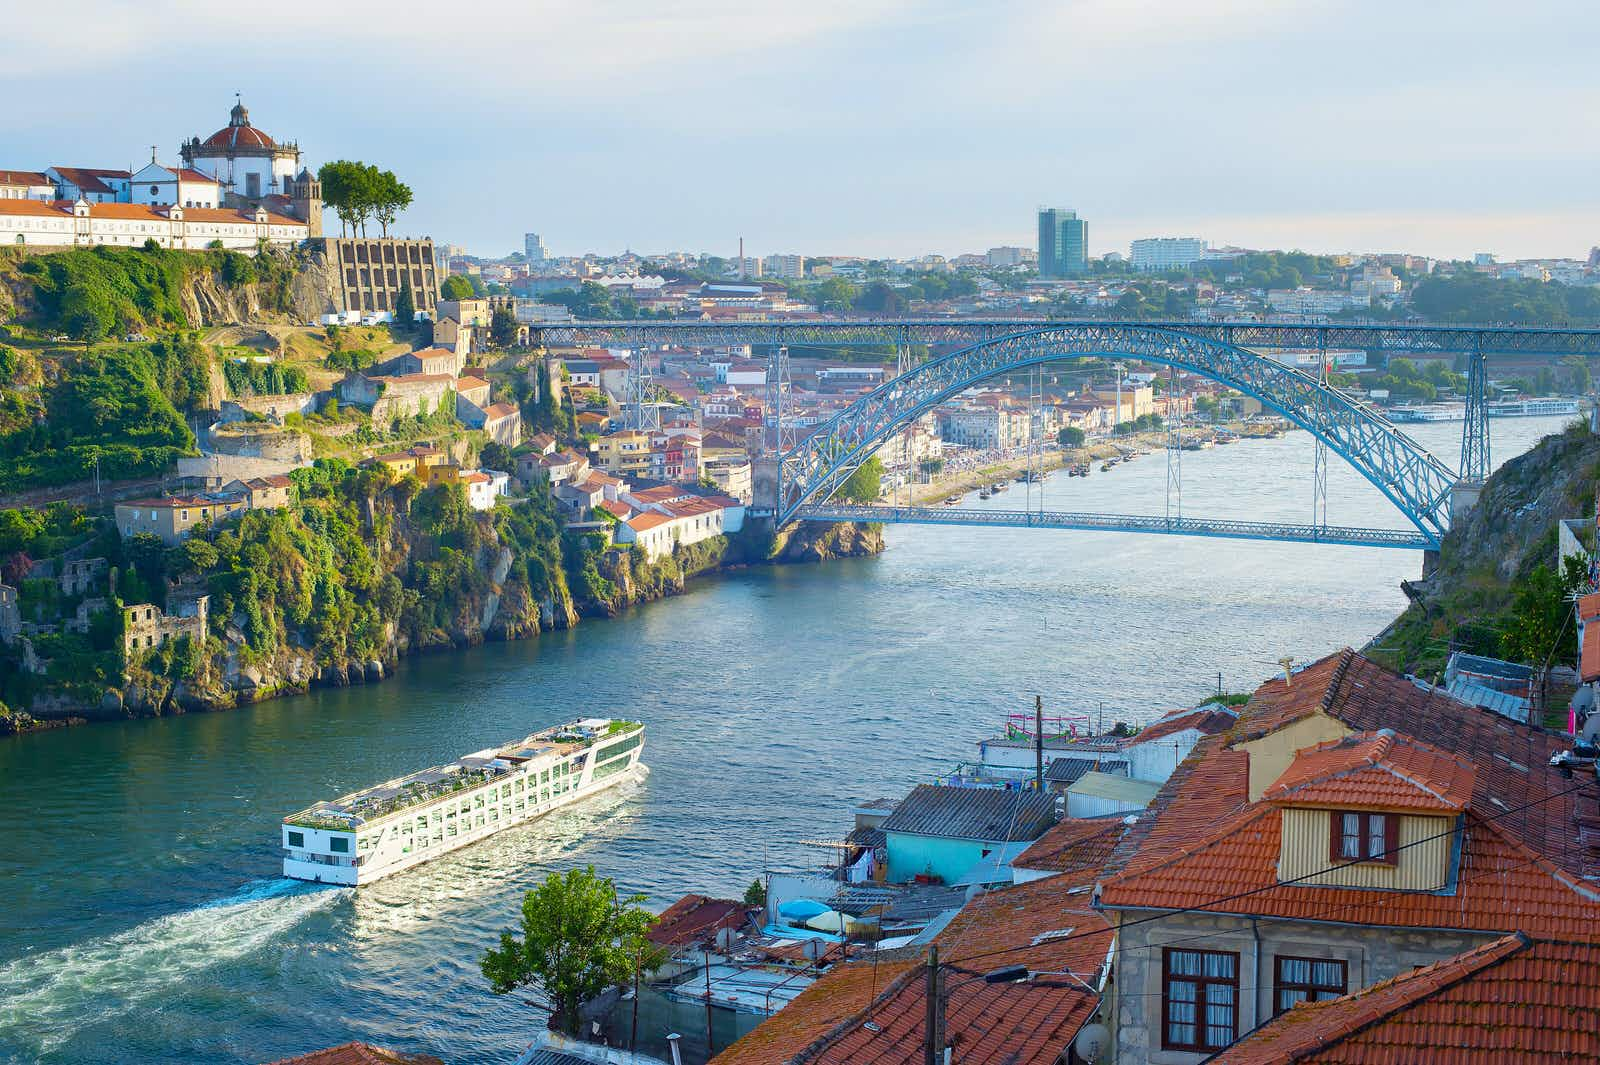 A cruise ship arrives in Porto on the river Douro.